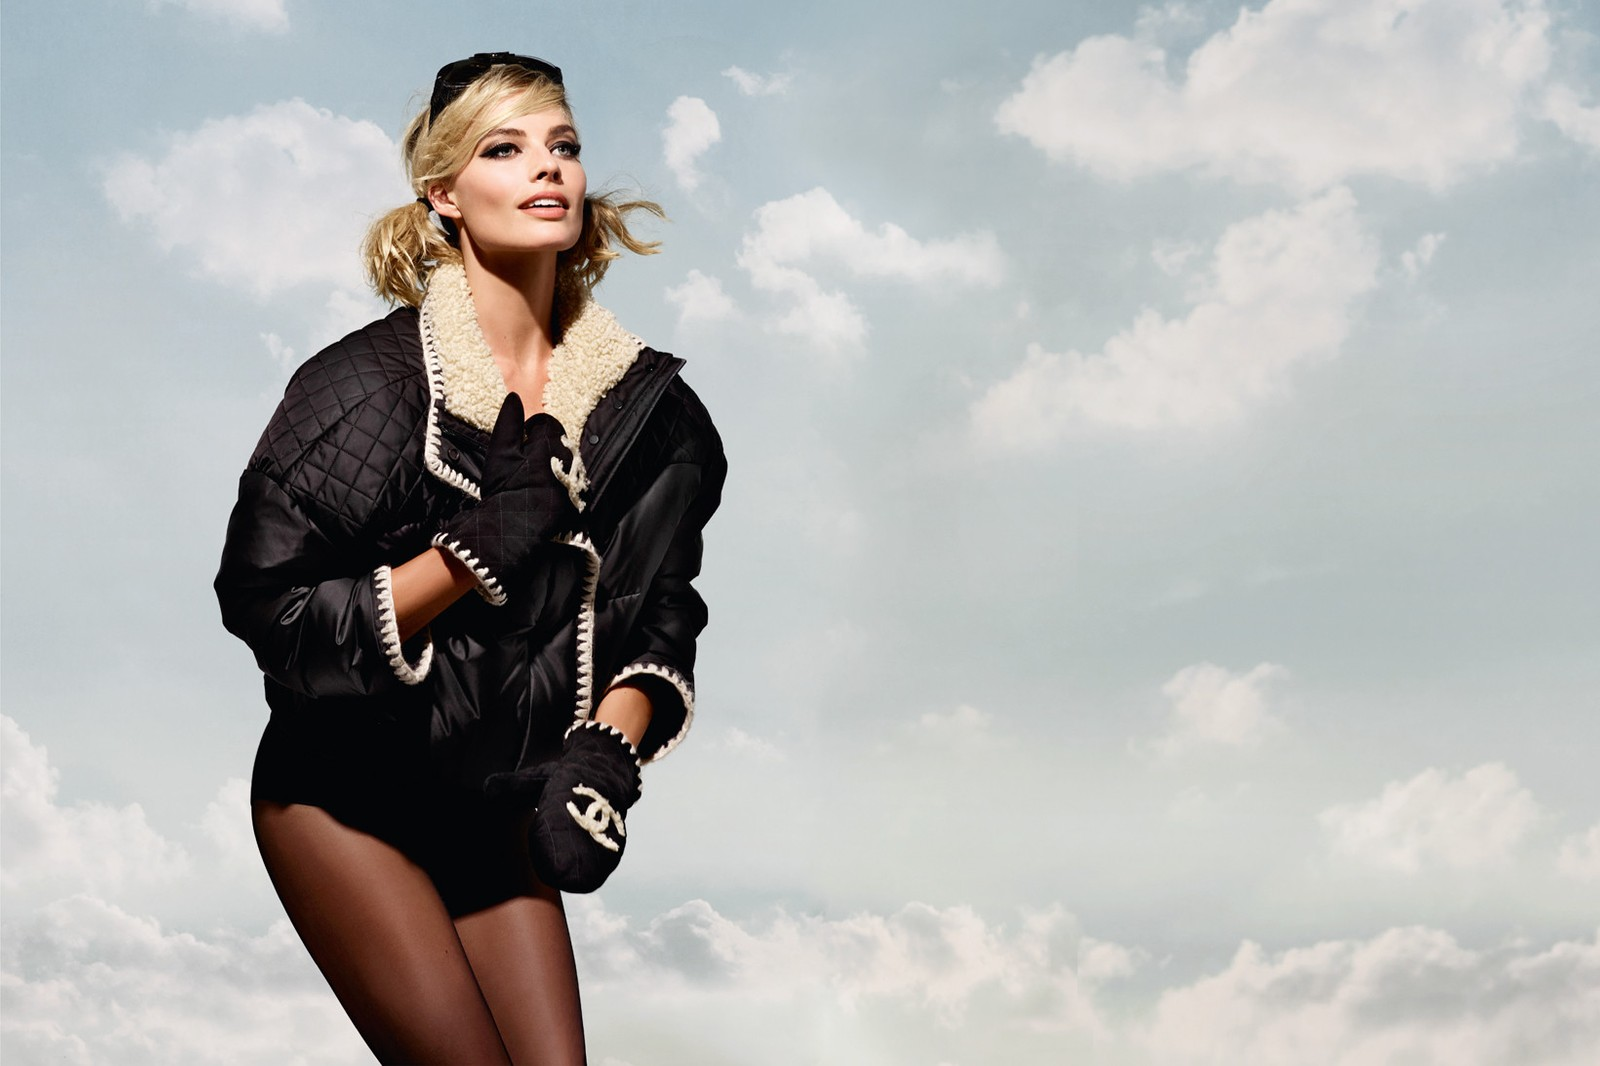 5 Facts About Hollywood Actress Margot Robbie Once Upon A Time in Hollywood Quentin Tarantino Brad Pitt Leonardo DiCaprio Movie